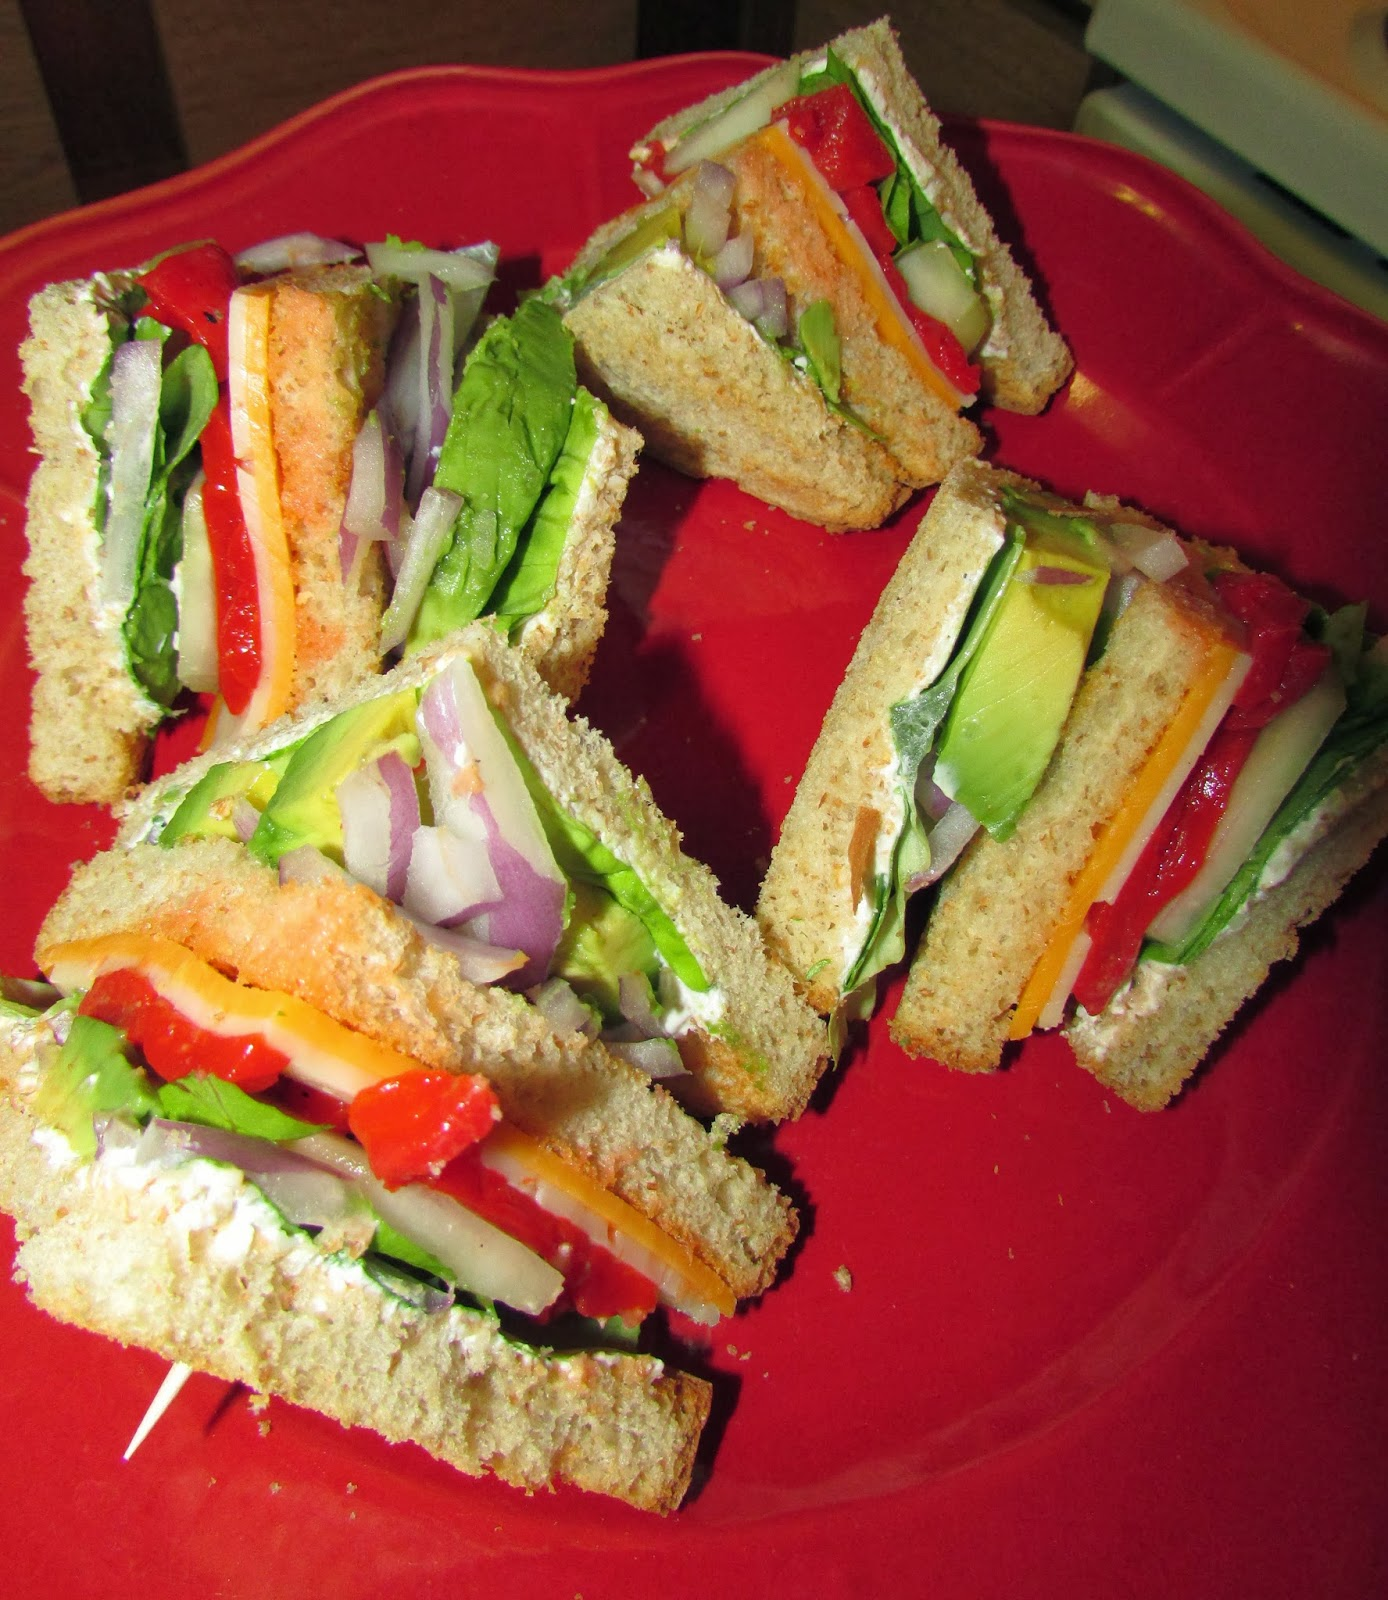 Veggie Club Sandwich. Jump to Recipe Print Recipe. I have been wanting to try an all vegetable sandwich for awhile now. I love how colorful it was and how the flavors complimented one another. I made an avocado mayonnaise using just Vegenaise and a ripe avocado. I must be honest this was what made the entire sandwich come together.